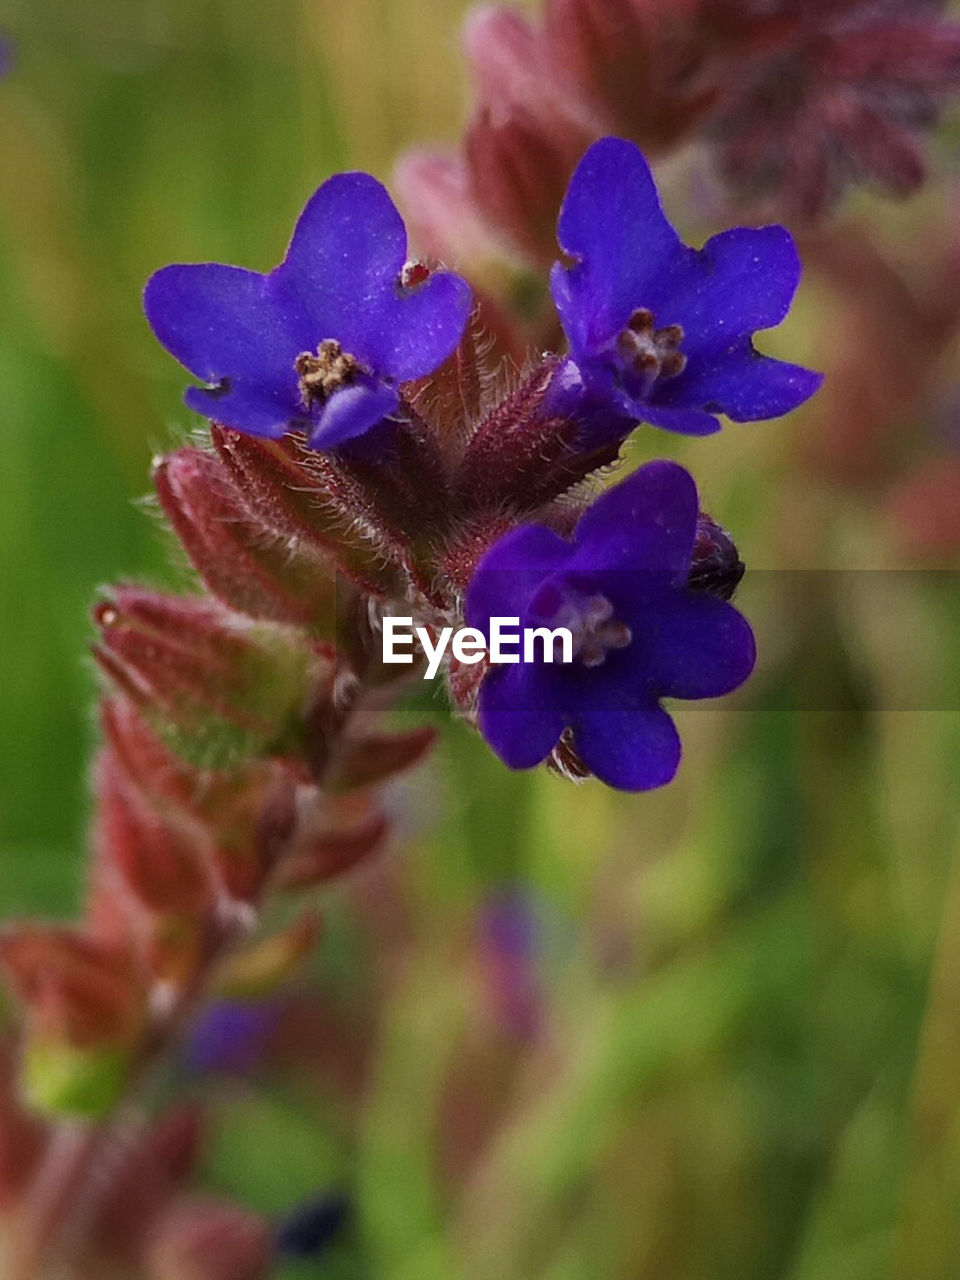 flowering plant, flower, plant, beauty in nature, vulnerability, growth, fragility, close-up, freshness, purple, petal, inflorescence, nature, flower head, focus on foreground, no people, selective focus, day, outdoors, botany